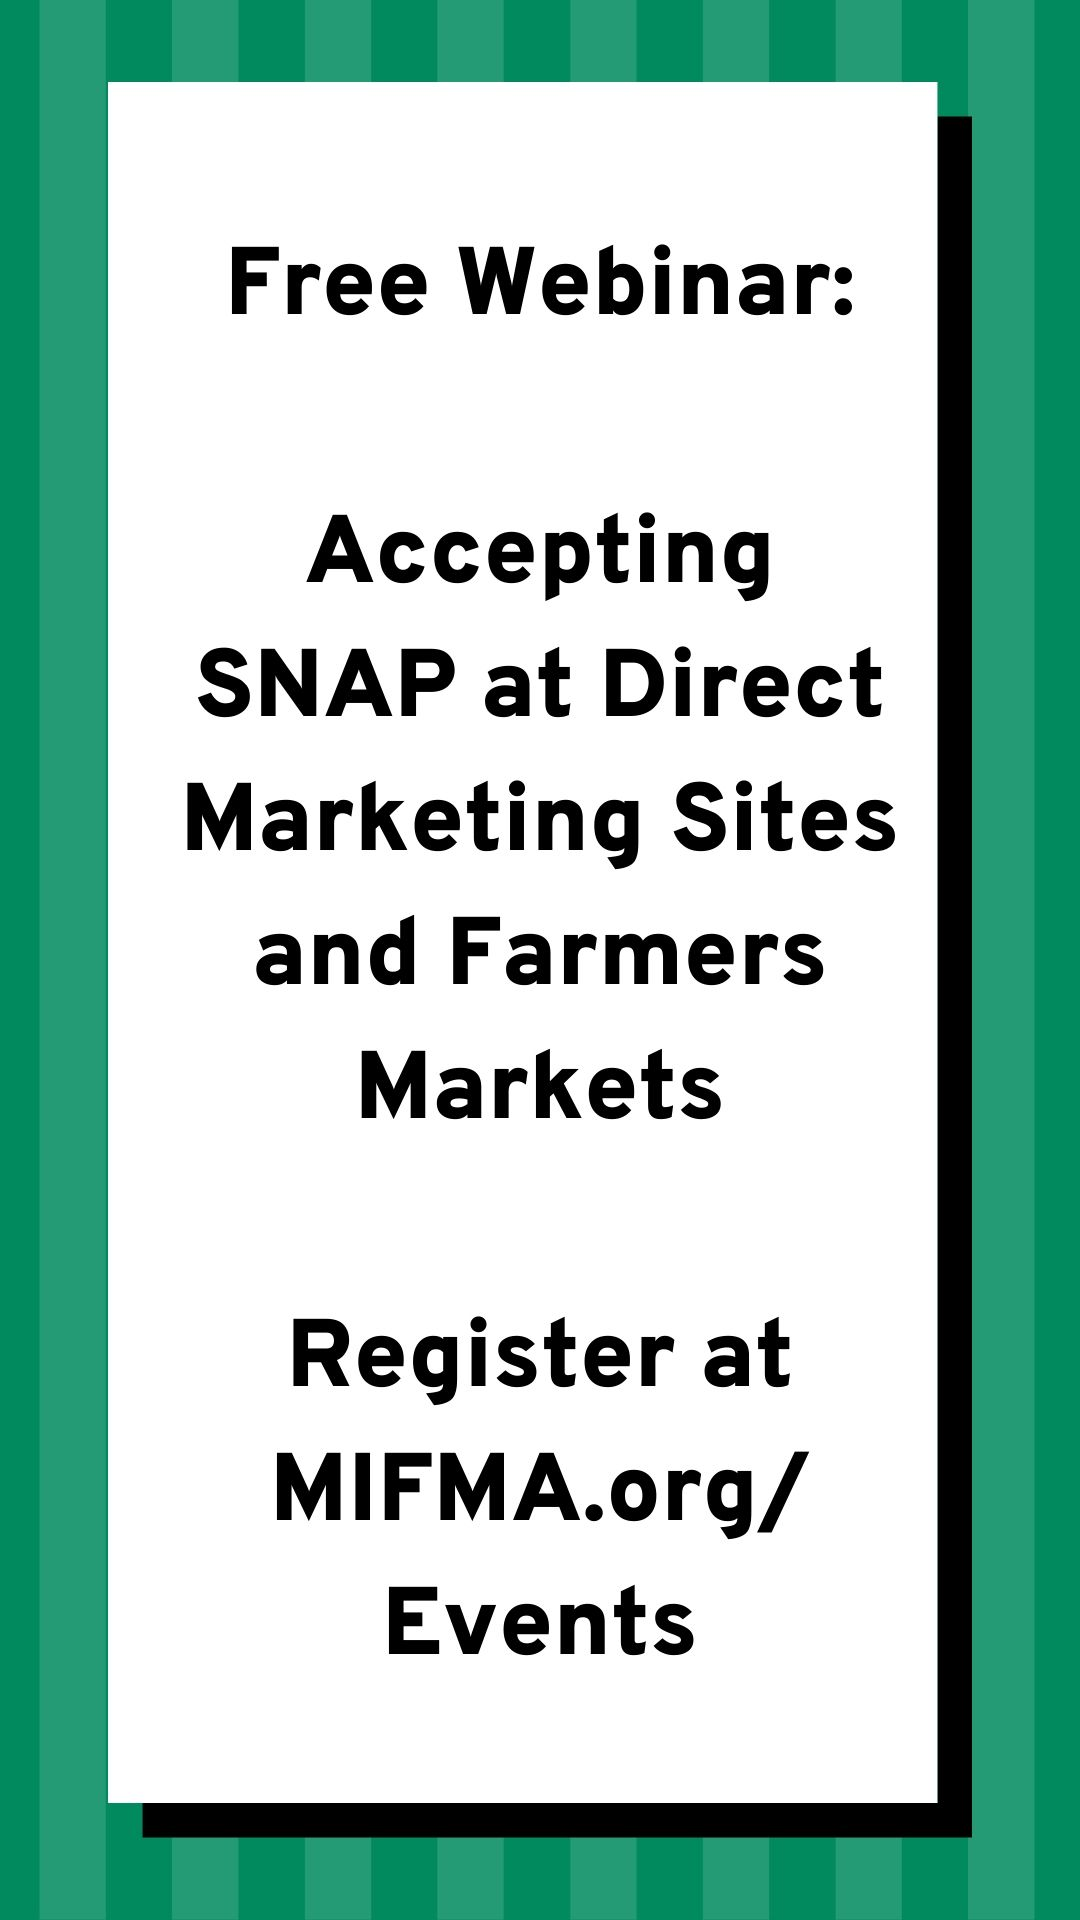 2020 Accepting SNAP at Direct Marketing Sites & Farmers